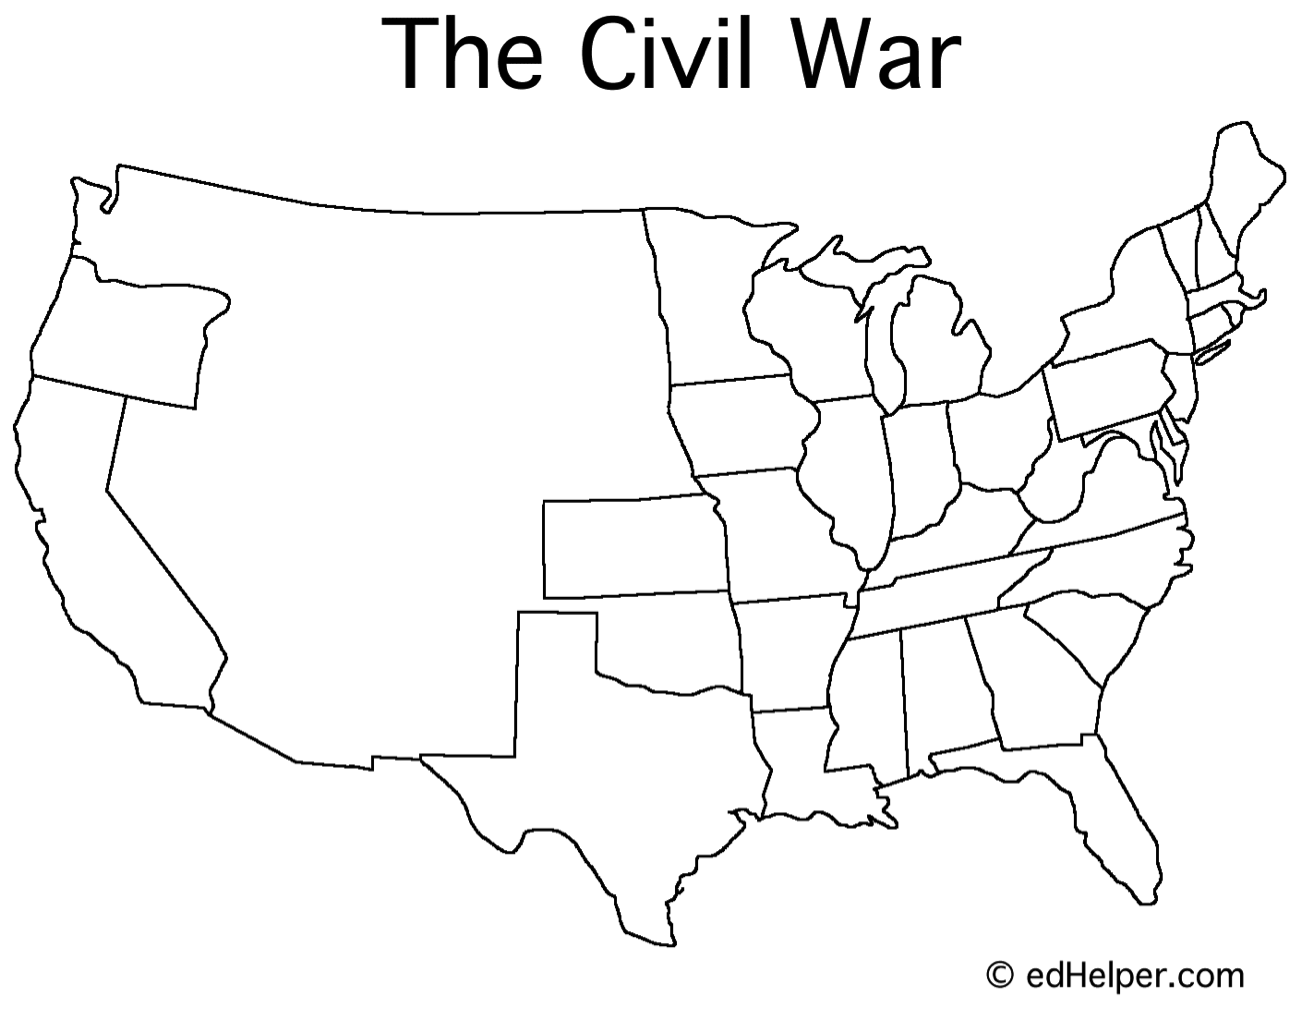 civil war timeline google search social studies pinterest social studies curriculum and. Black Bedroom Furniture Sets. Home Design Ideas